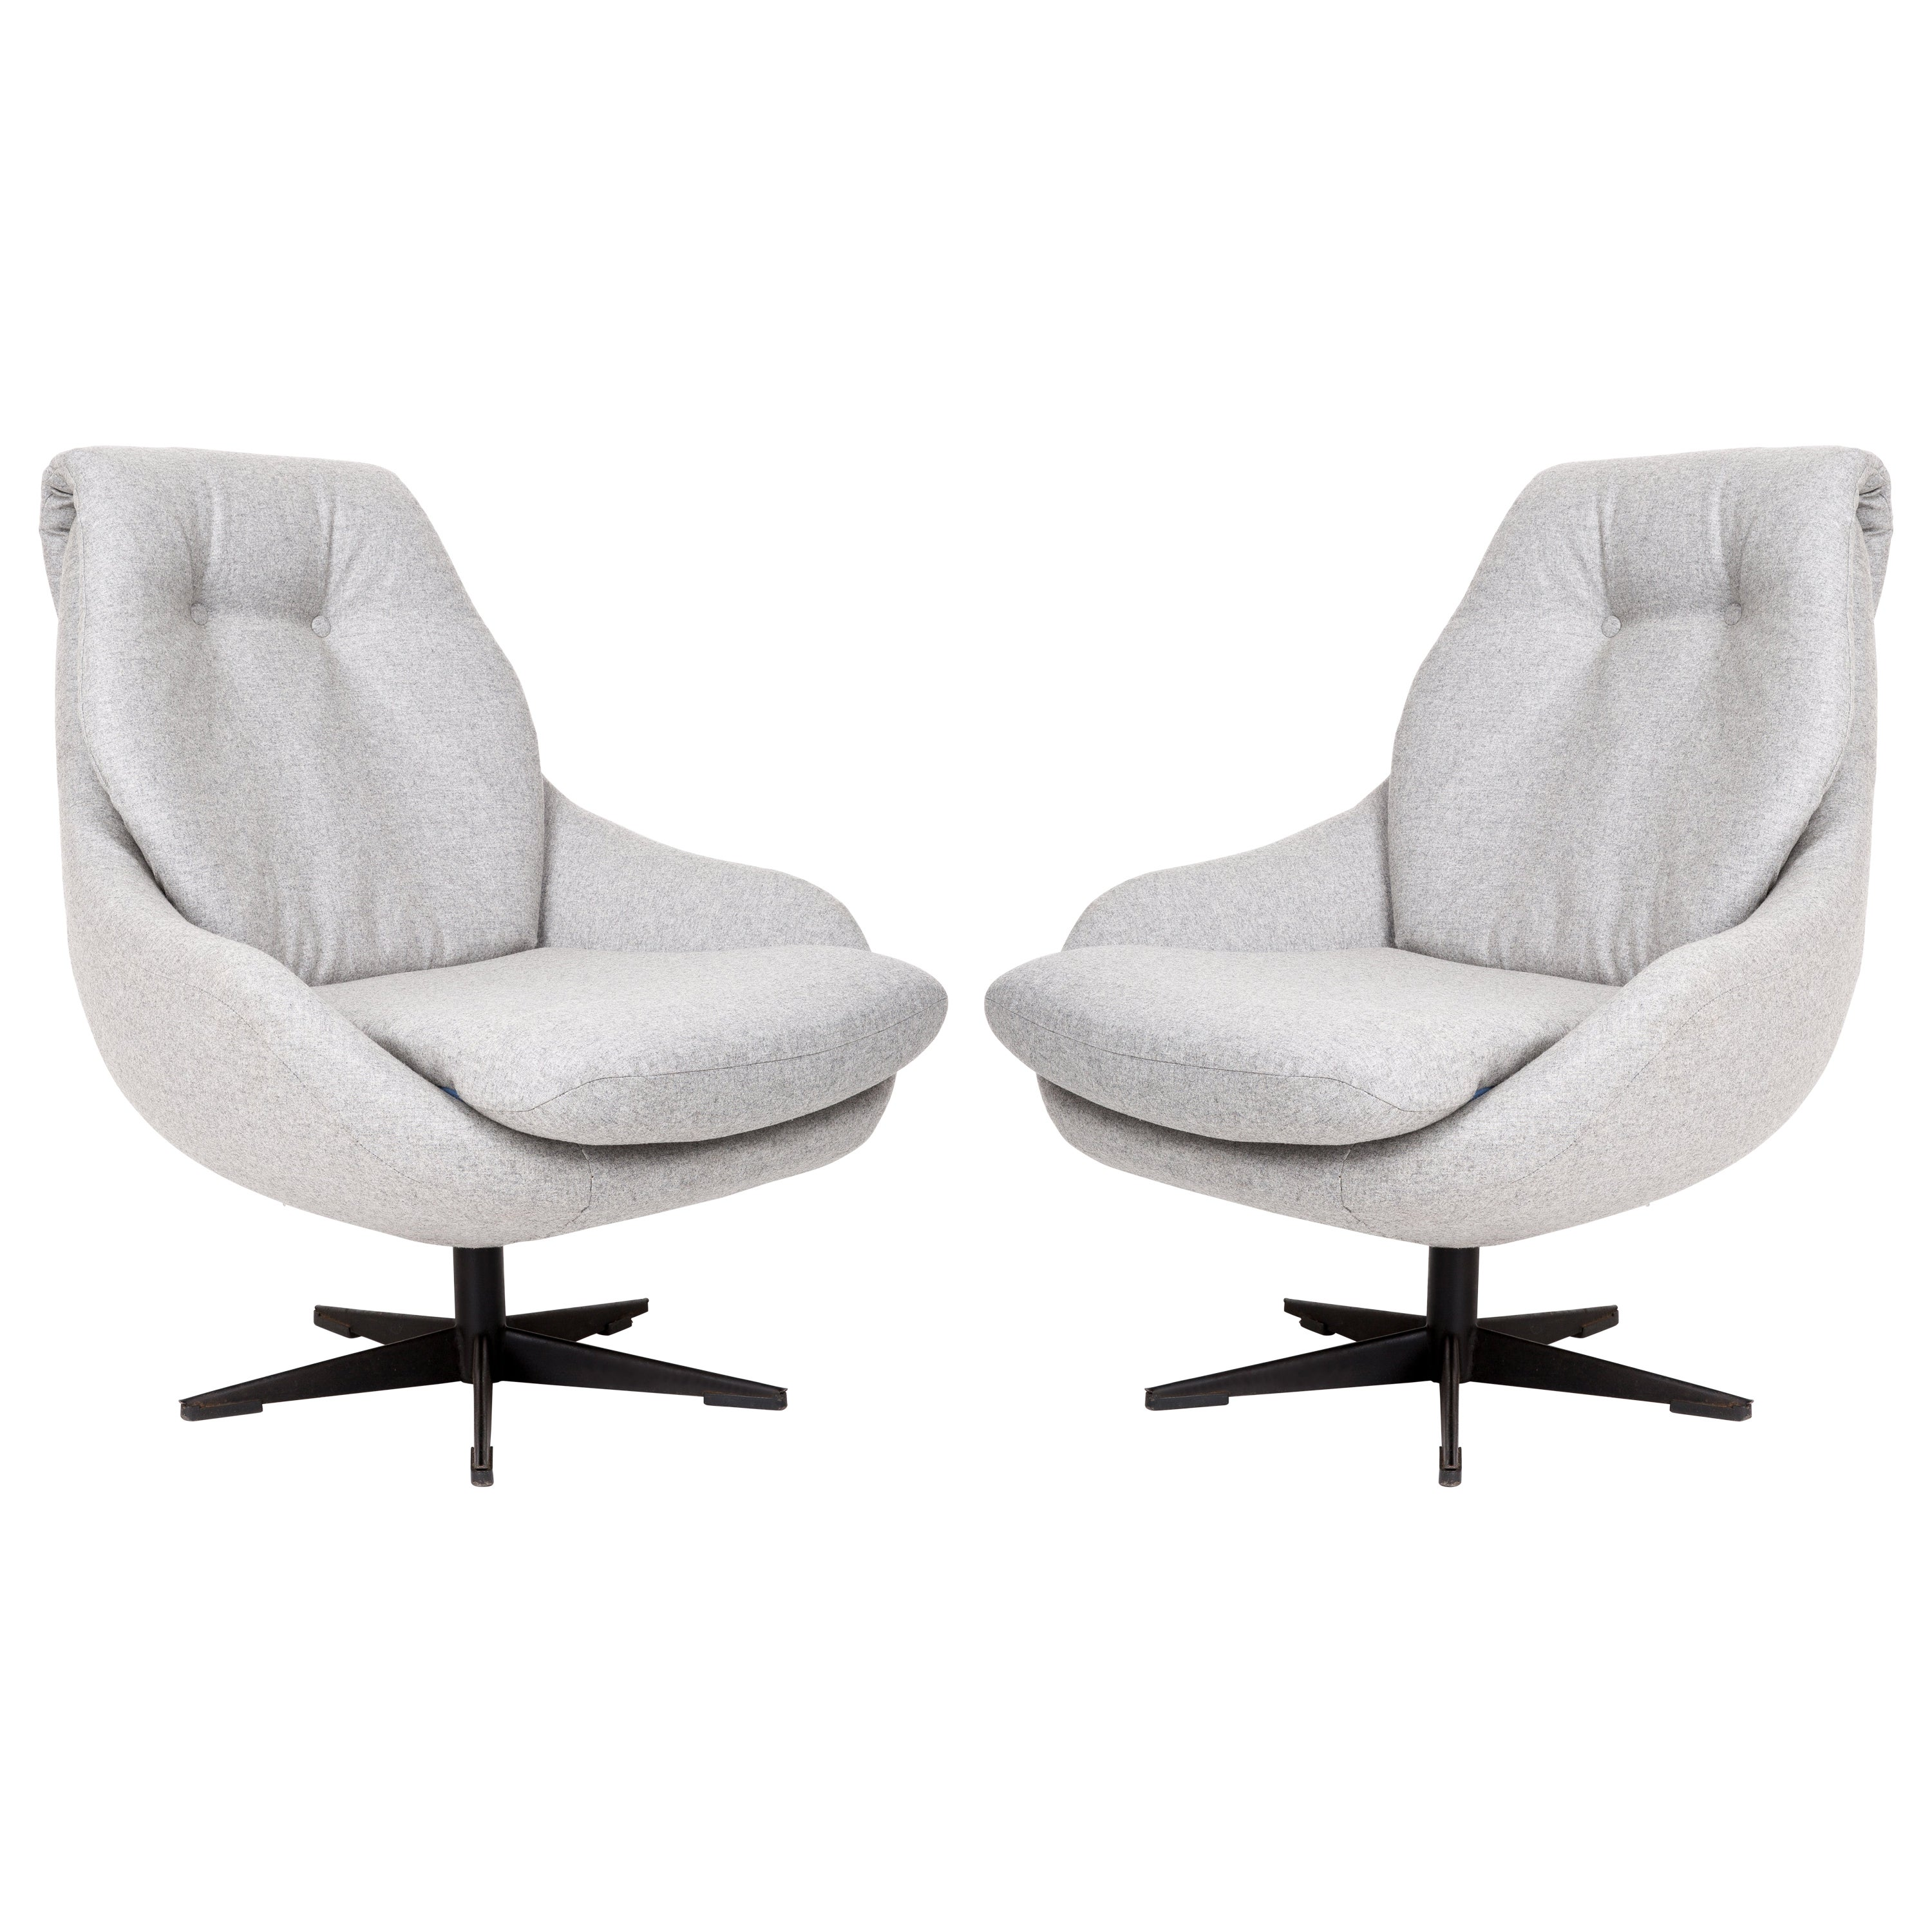 Set of Two 20th Century Vintage Gray Swivel Armchairs, 1960s